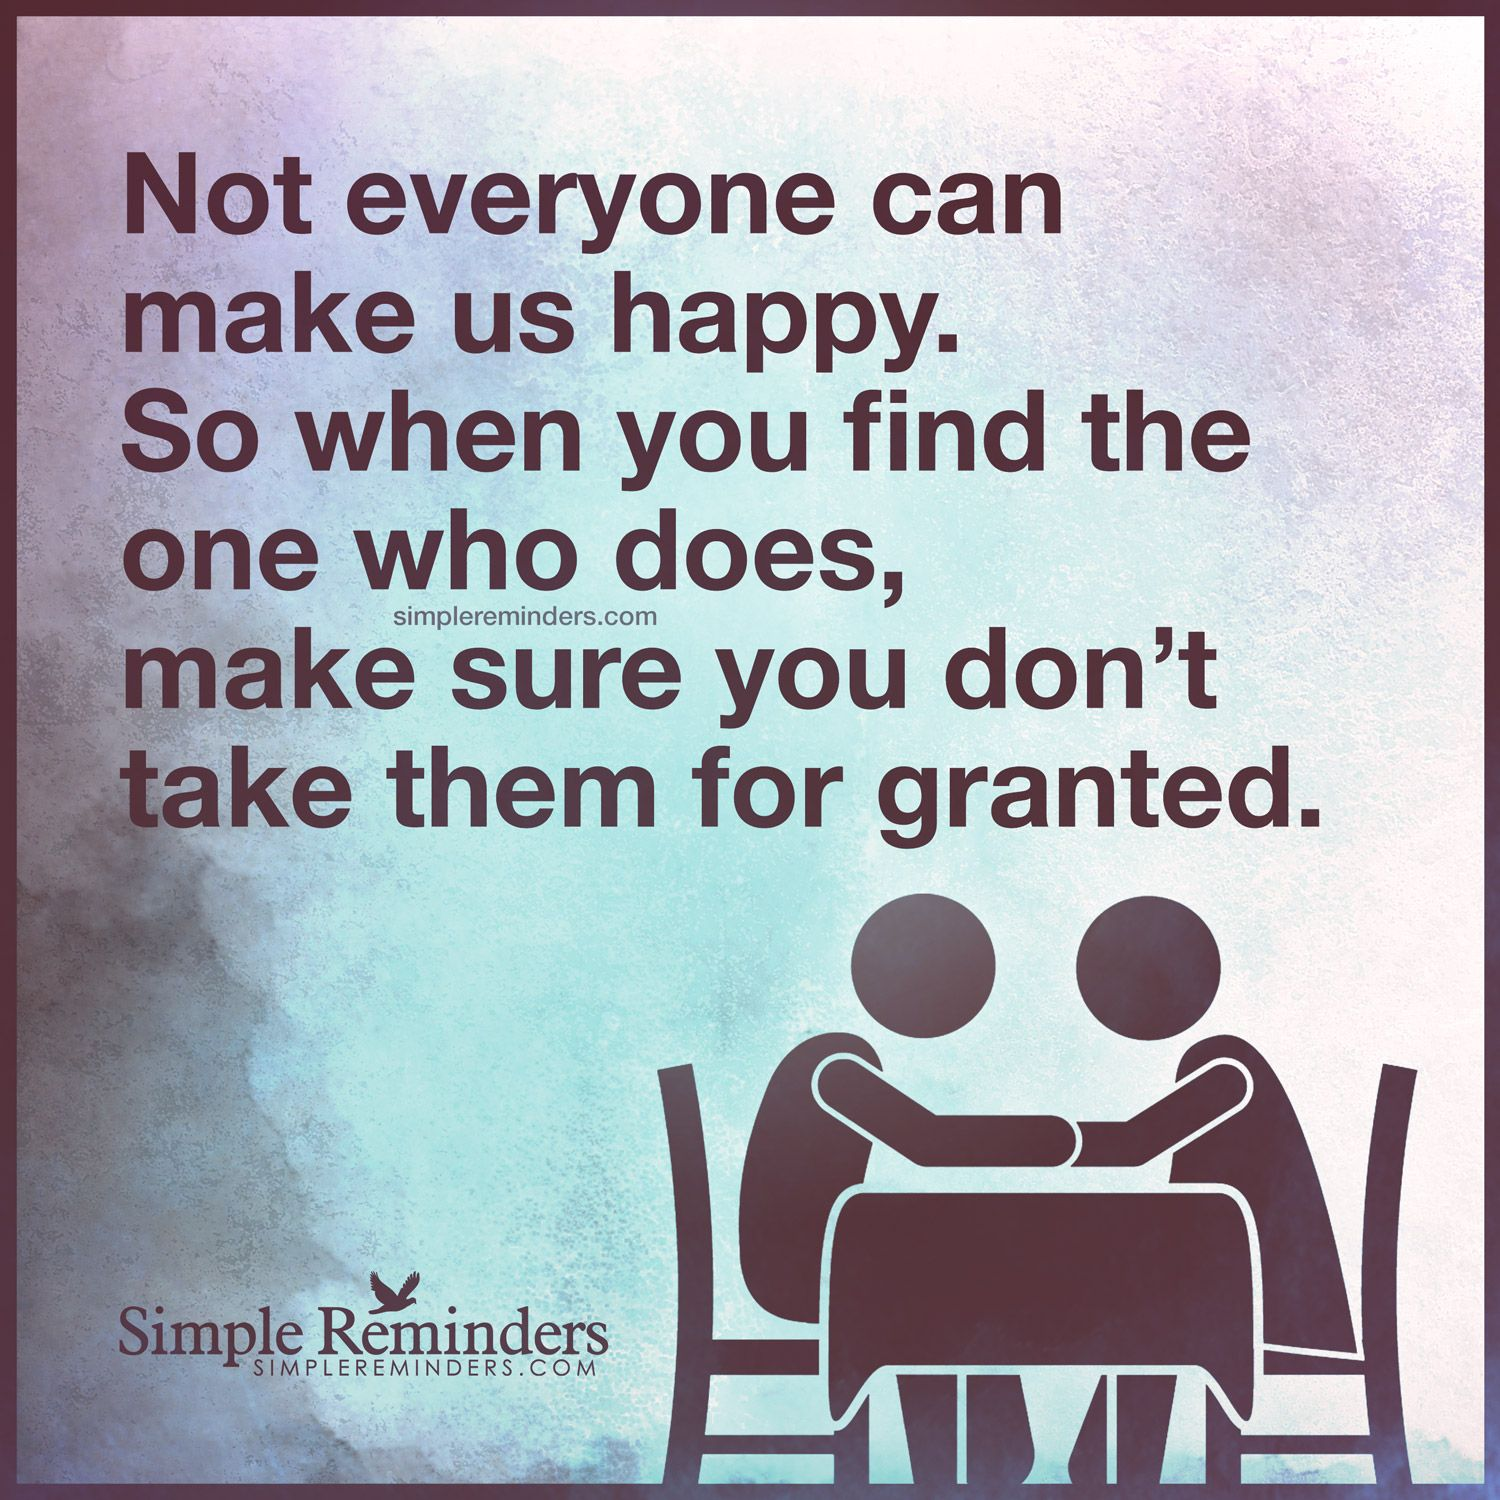 I Appreciate You Quotes For Loved Ones Do Not Take Loved Ones For Granted  Loa Lover  Pinterest